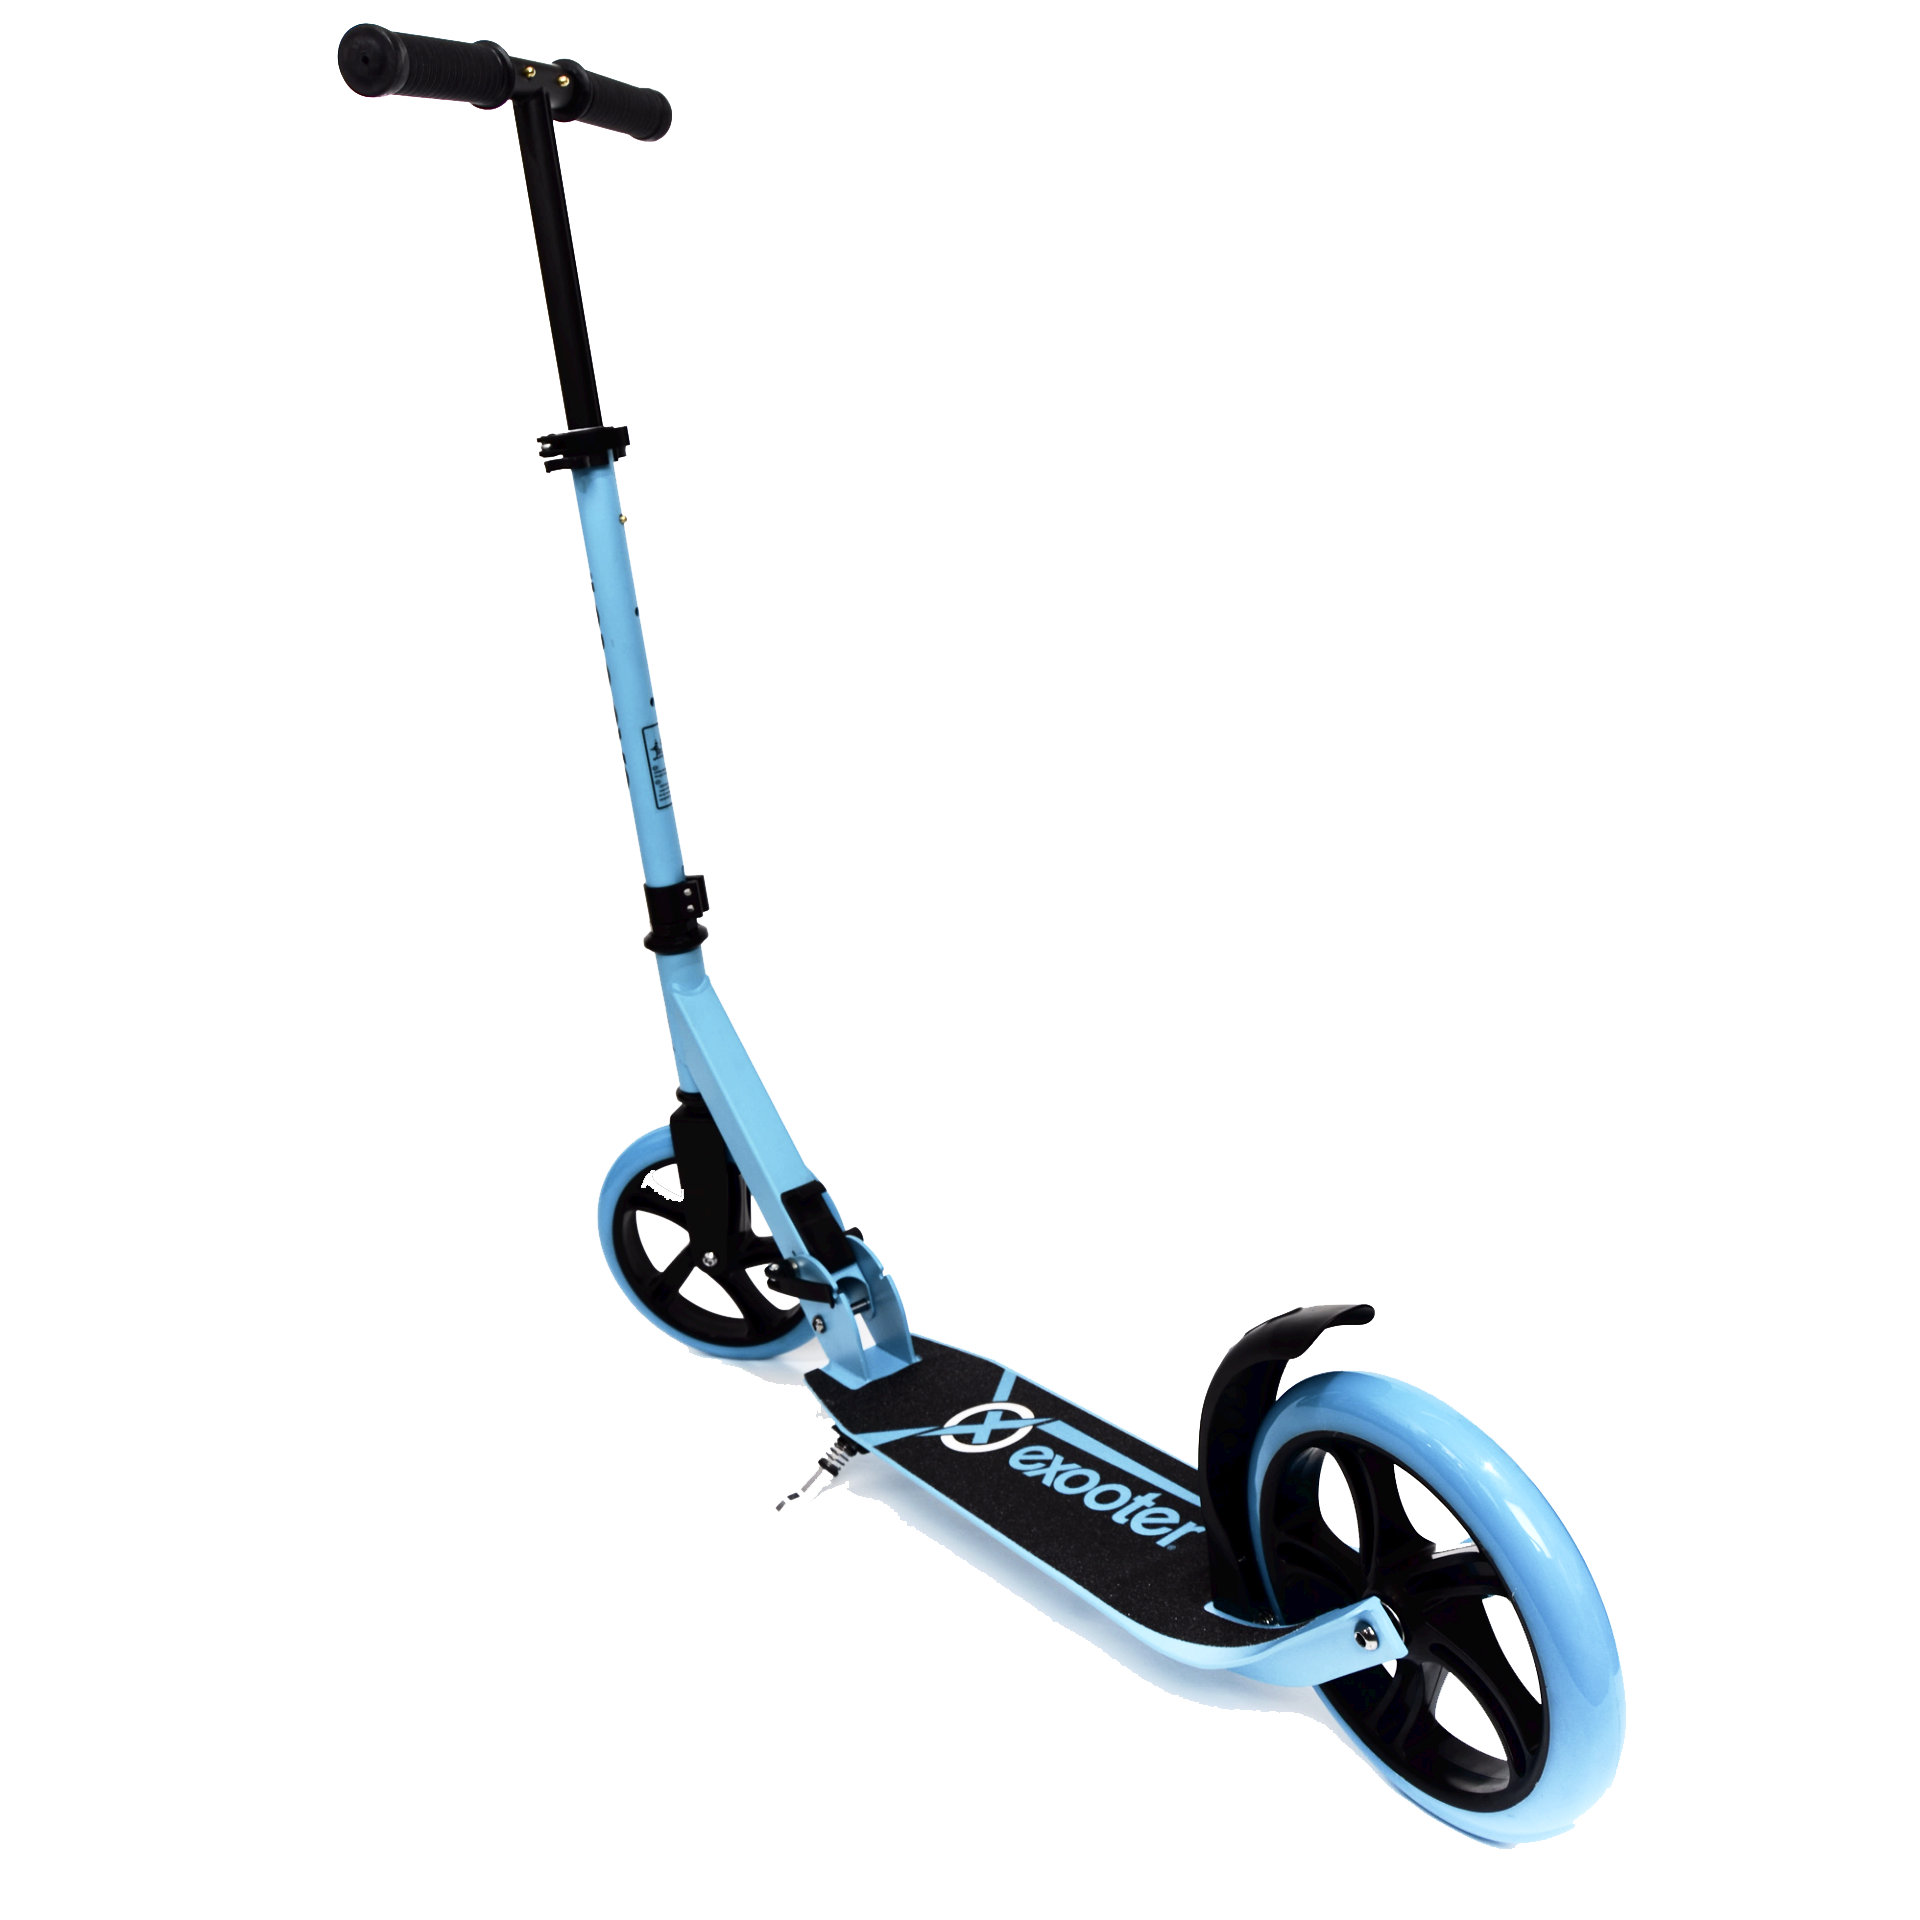 kick scooter transparent png png mart #37130